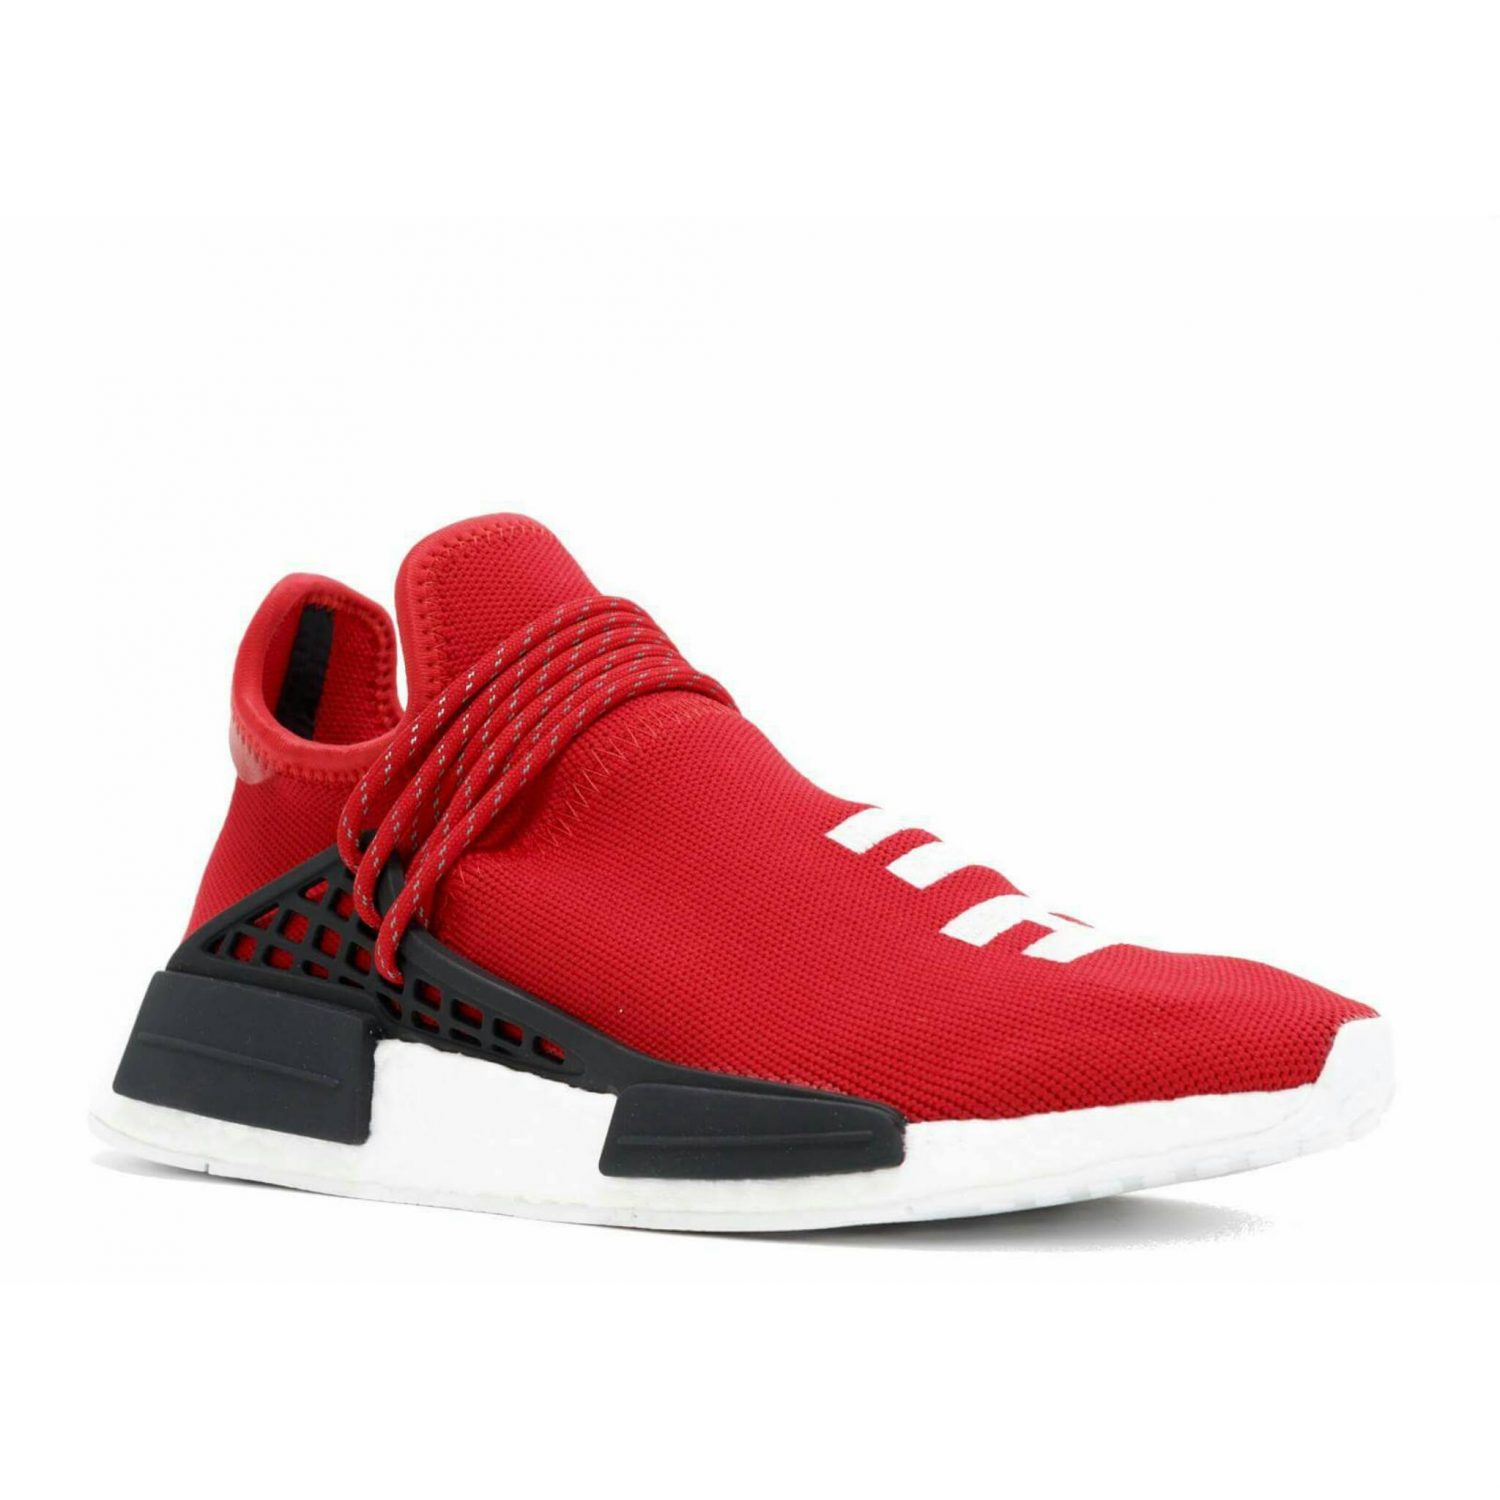 meet 5bbab 6bf06 Human Race For Women - Shoes Online Shopping in Pakistan ...